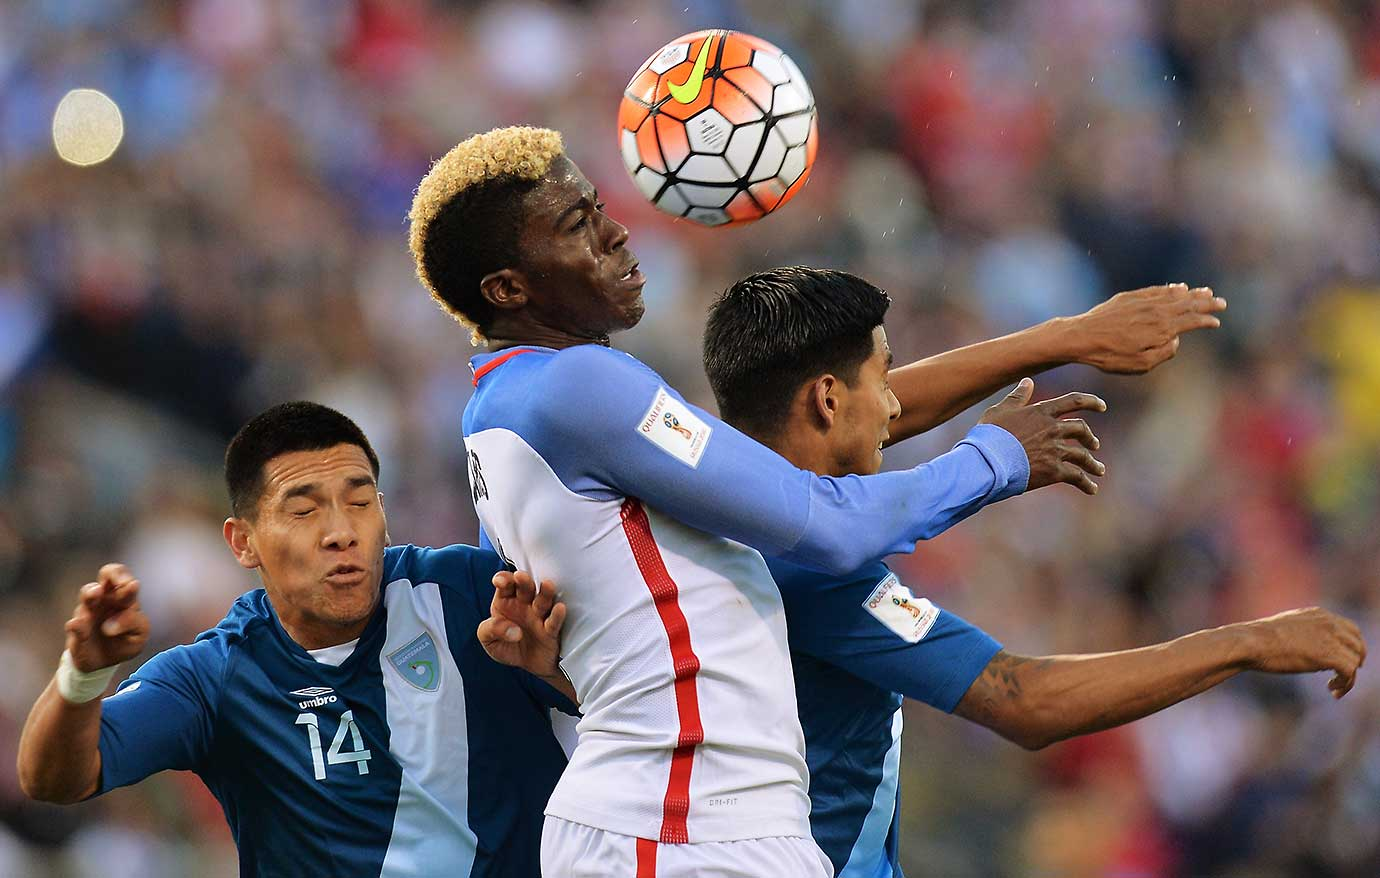 Gyasi Zardes of the U.S. gets control of the ball around Rafael Morales and Moises Hernandez of Guatemala.